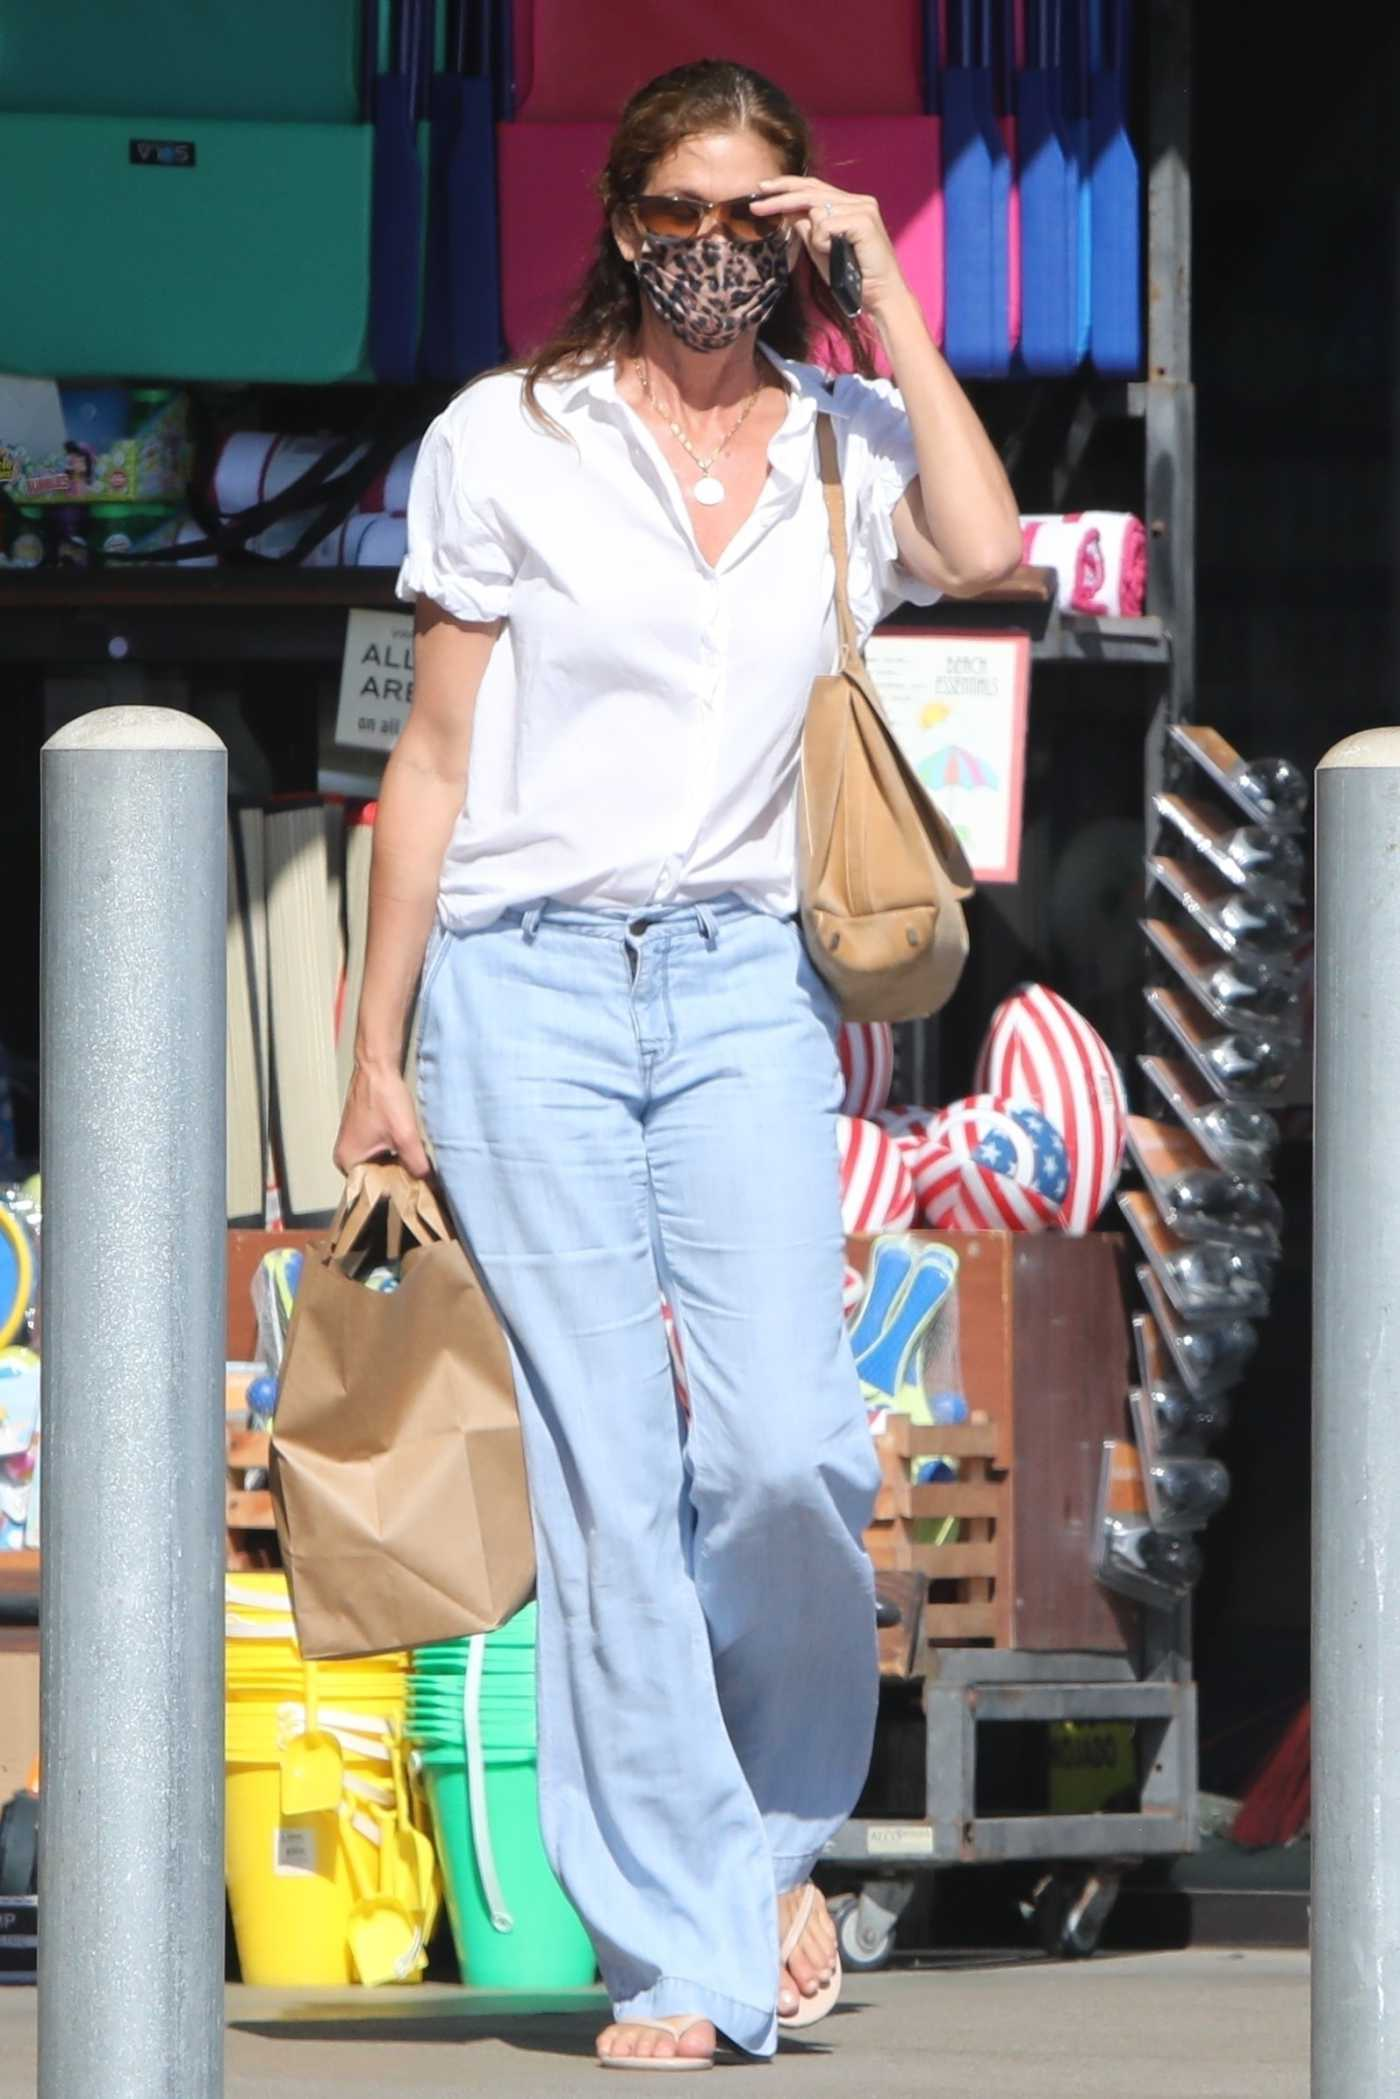 Cindy Crawford in a White Blouse Goes Grocery Shopping at Vintage Grocers in Malibu 07/19/2021